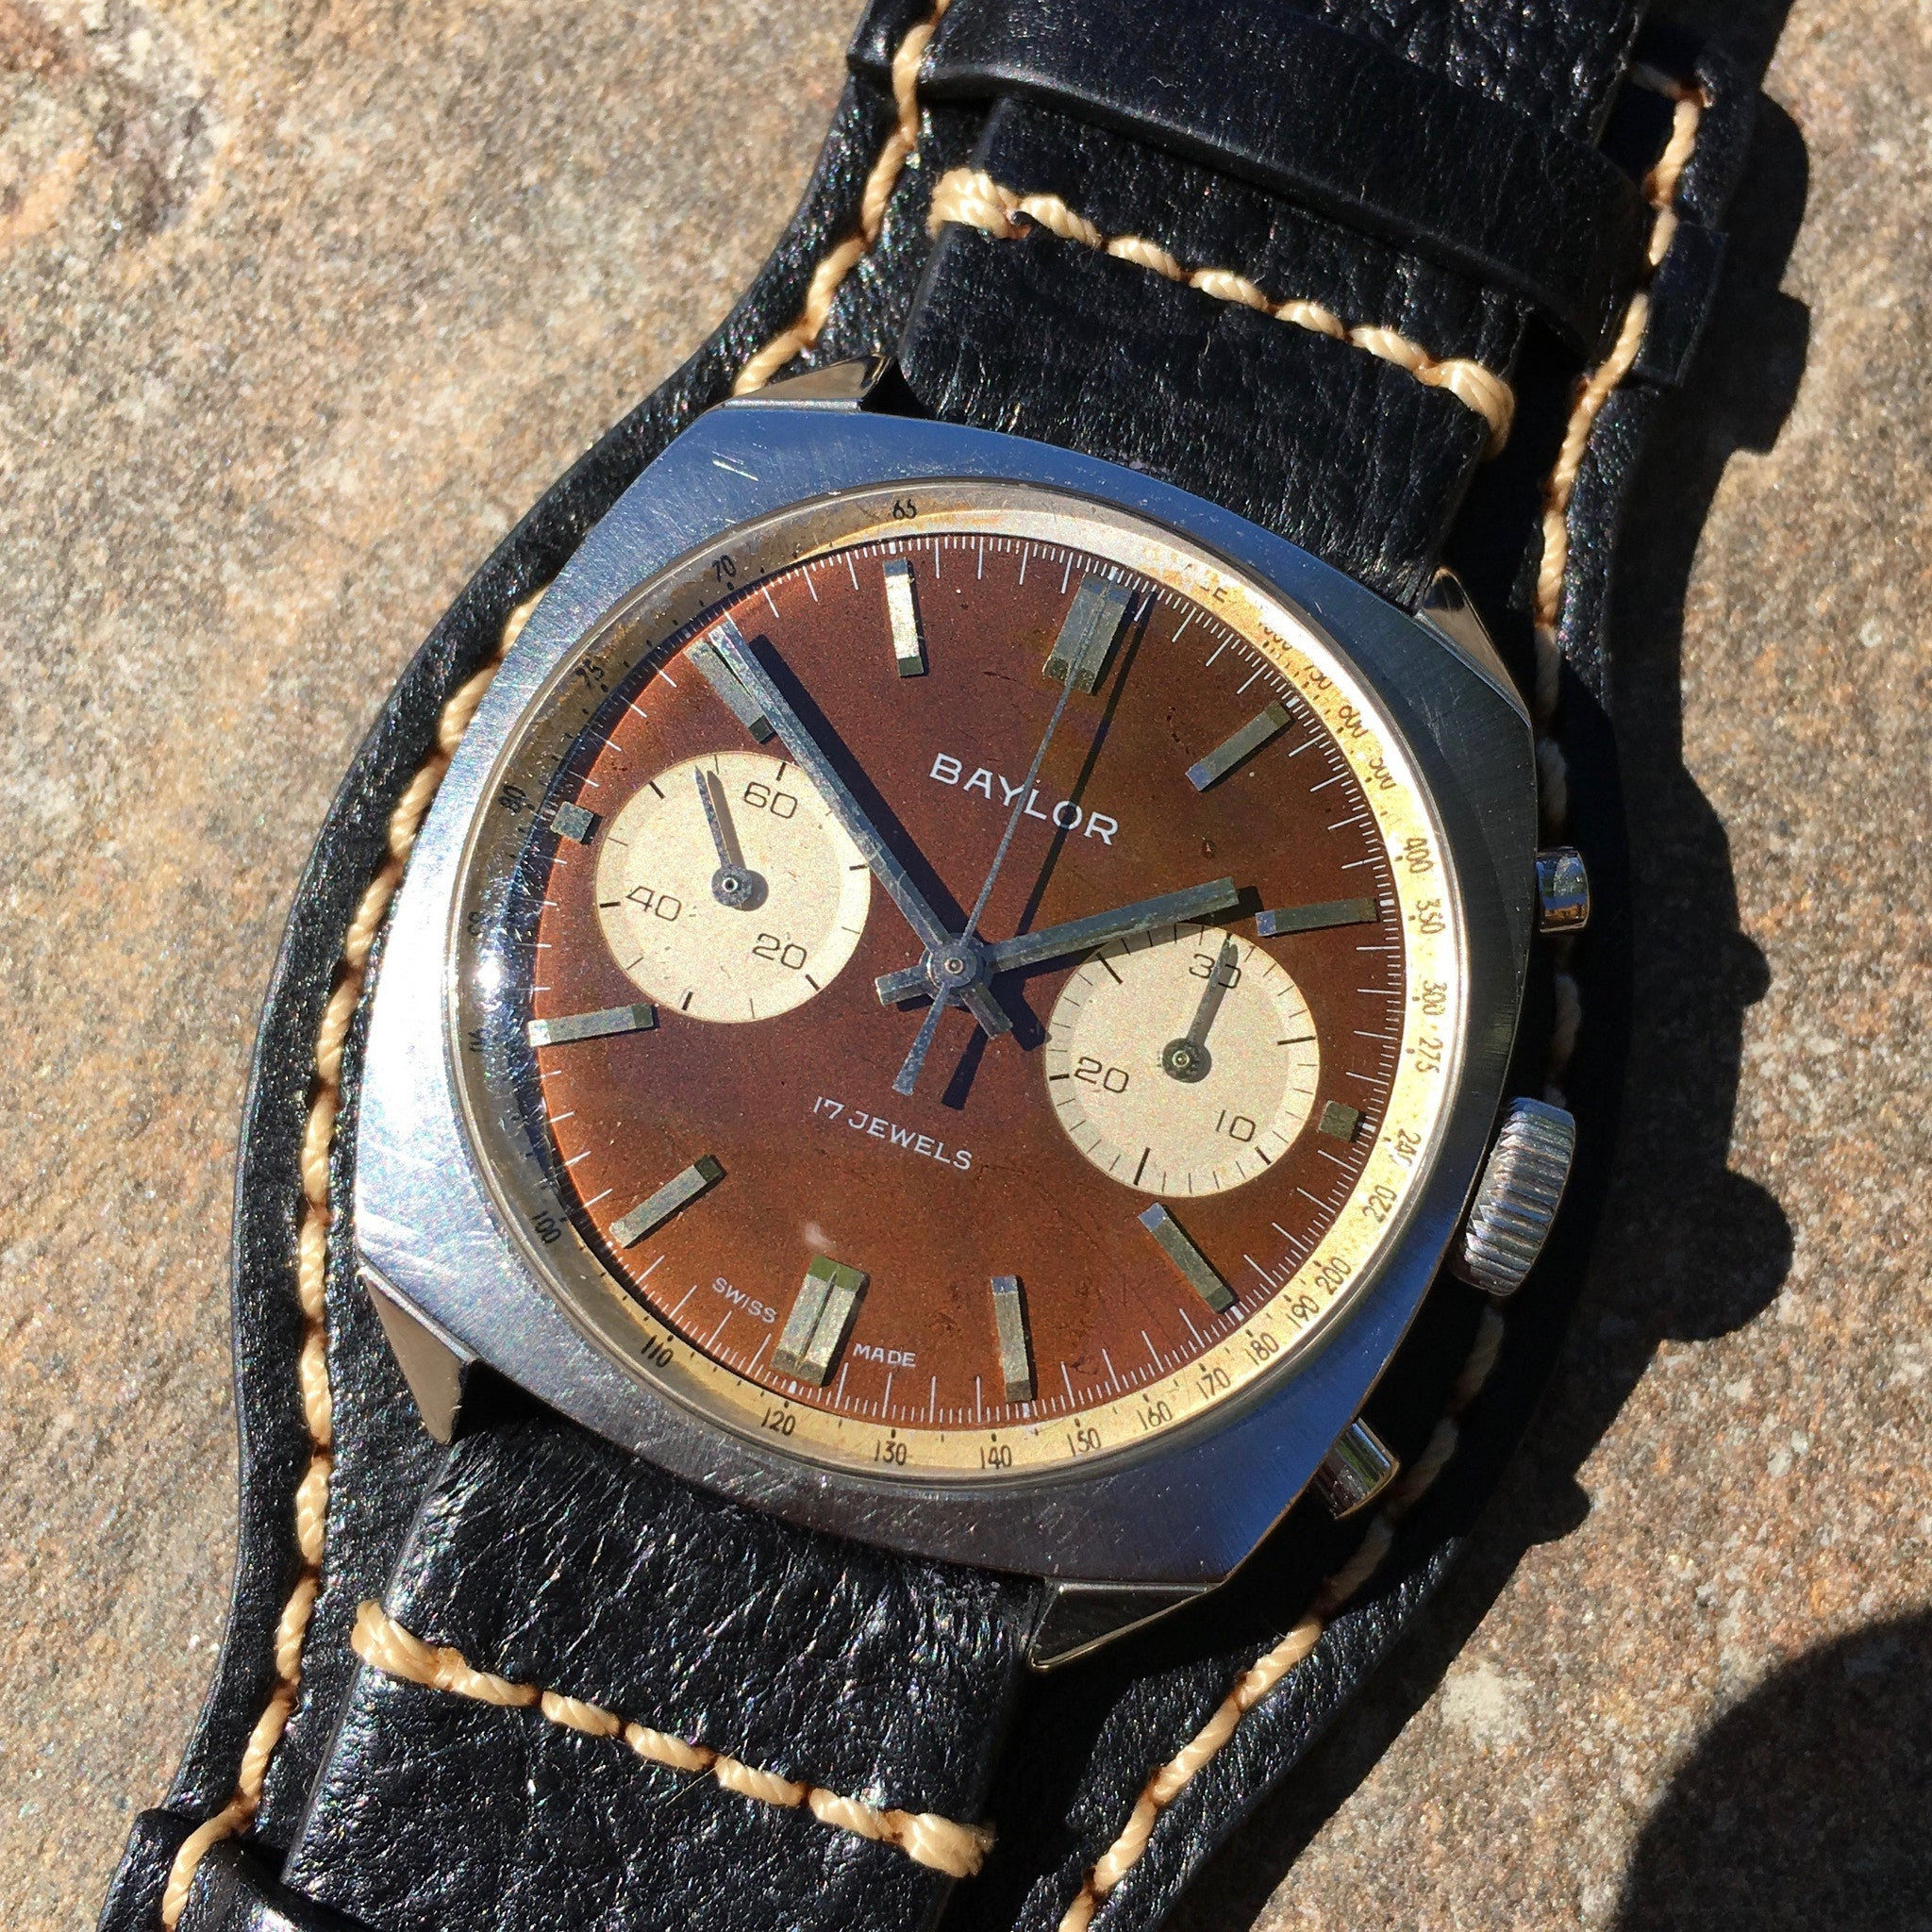 Vintage Baylor Steel Chronograph Venus 210 Brown Tropical Manual Wristwatch - Hashtag Watch Company